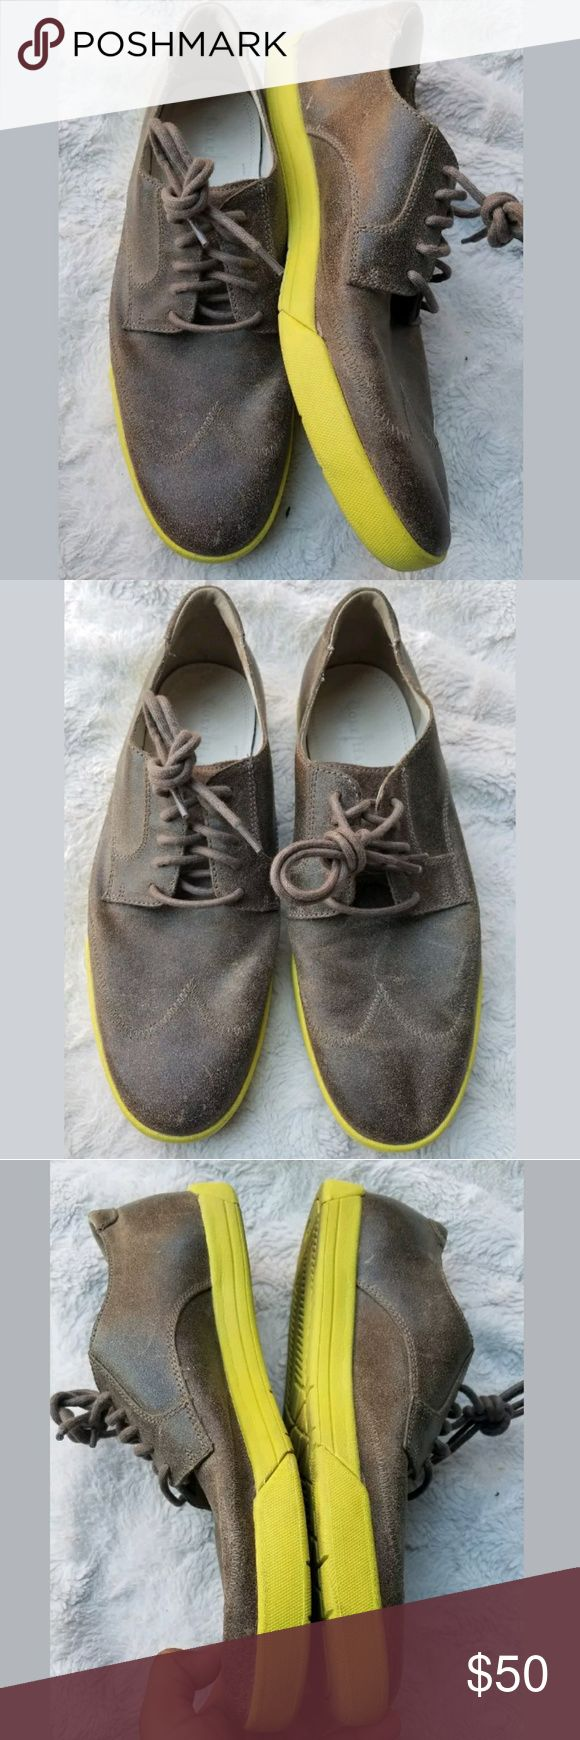 cole haan air jasper wing tip w/nike air bottom volt yellow smoke suade. great condition please refer to pictures please ask questions Cole Haan Shoes Oxfords & Derbys